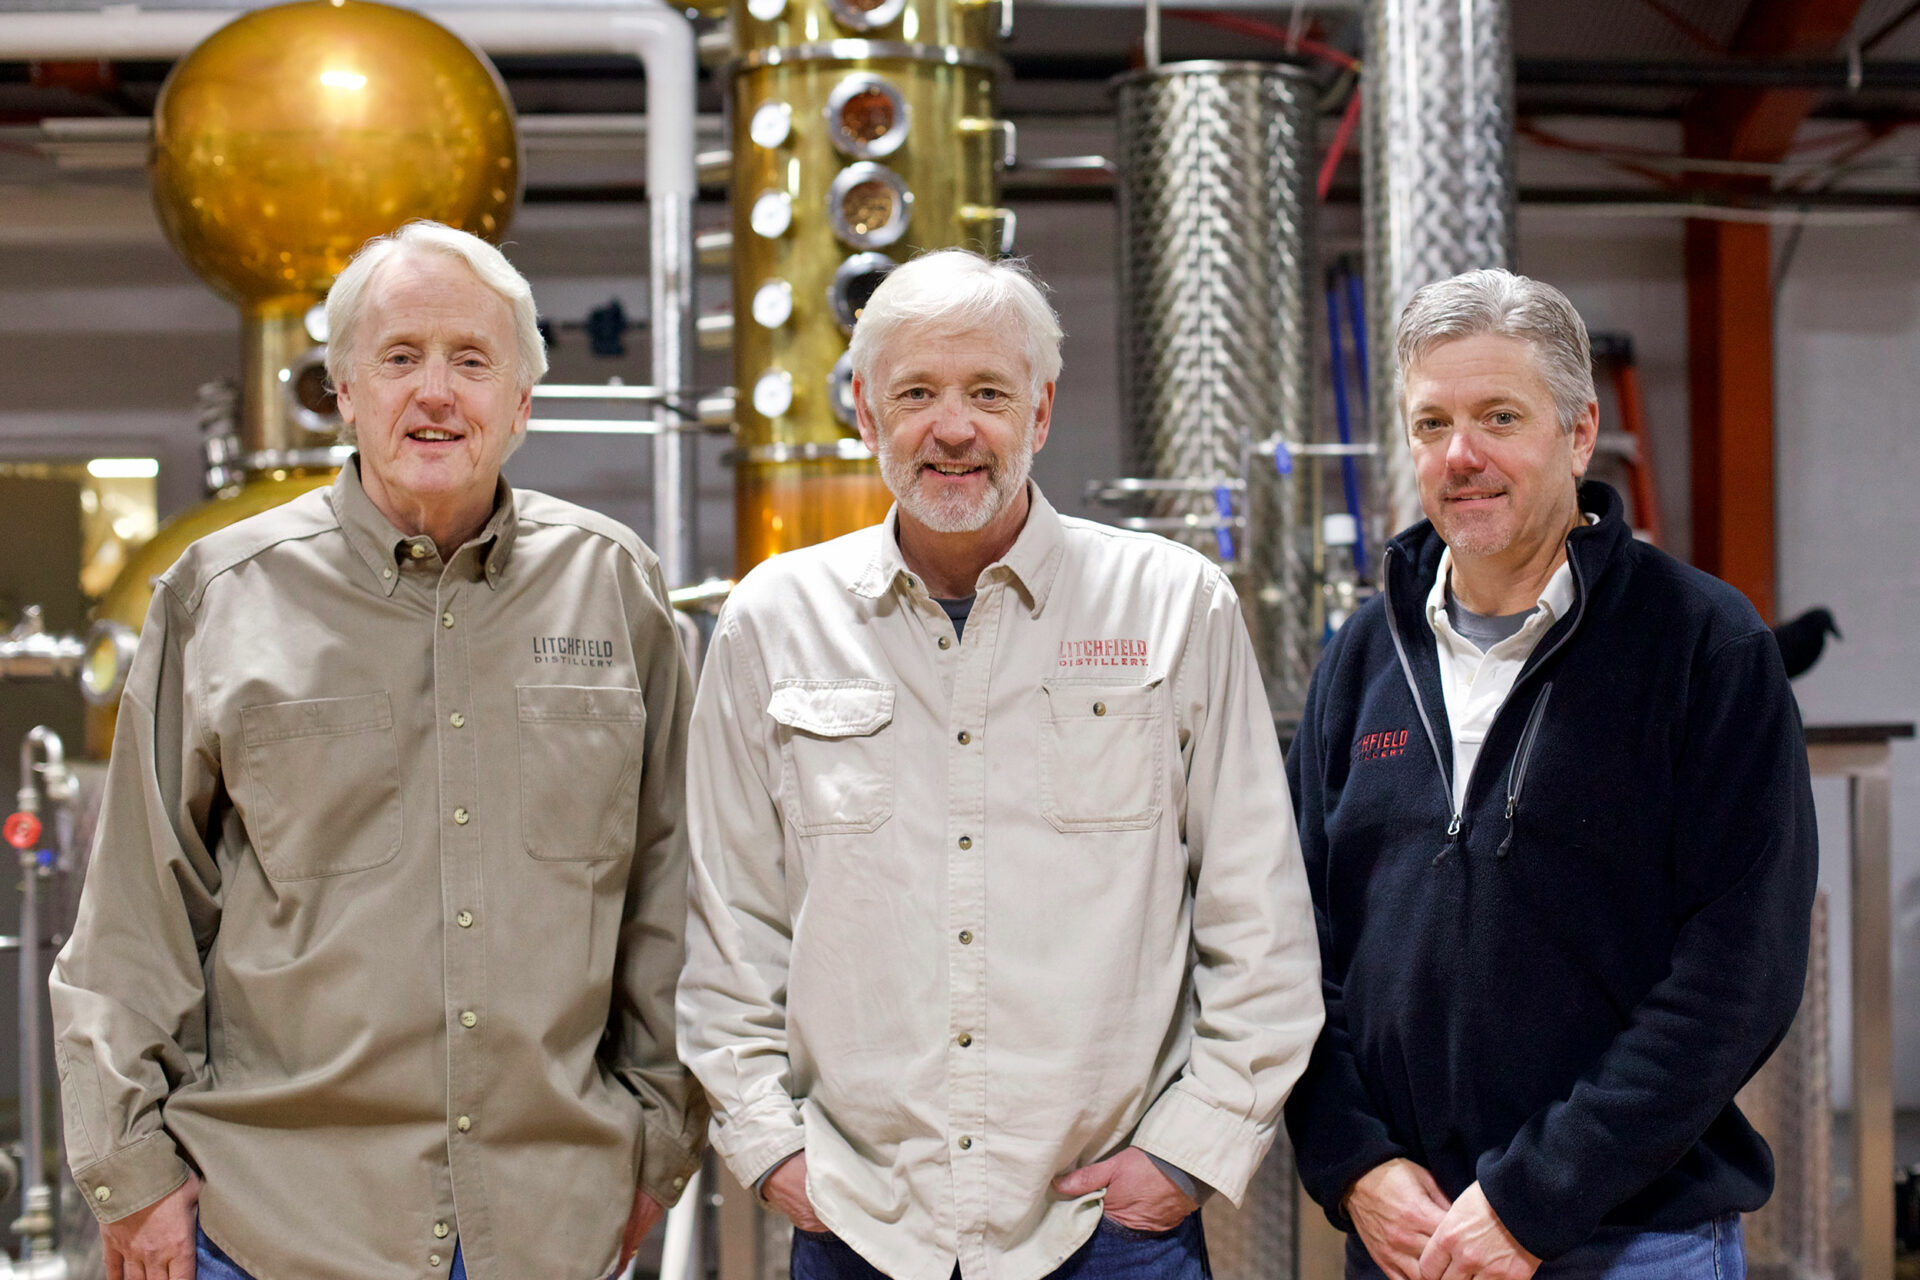 The Batchers of Litchfield Distillery